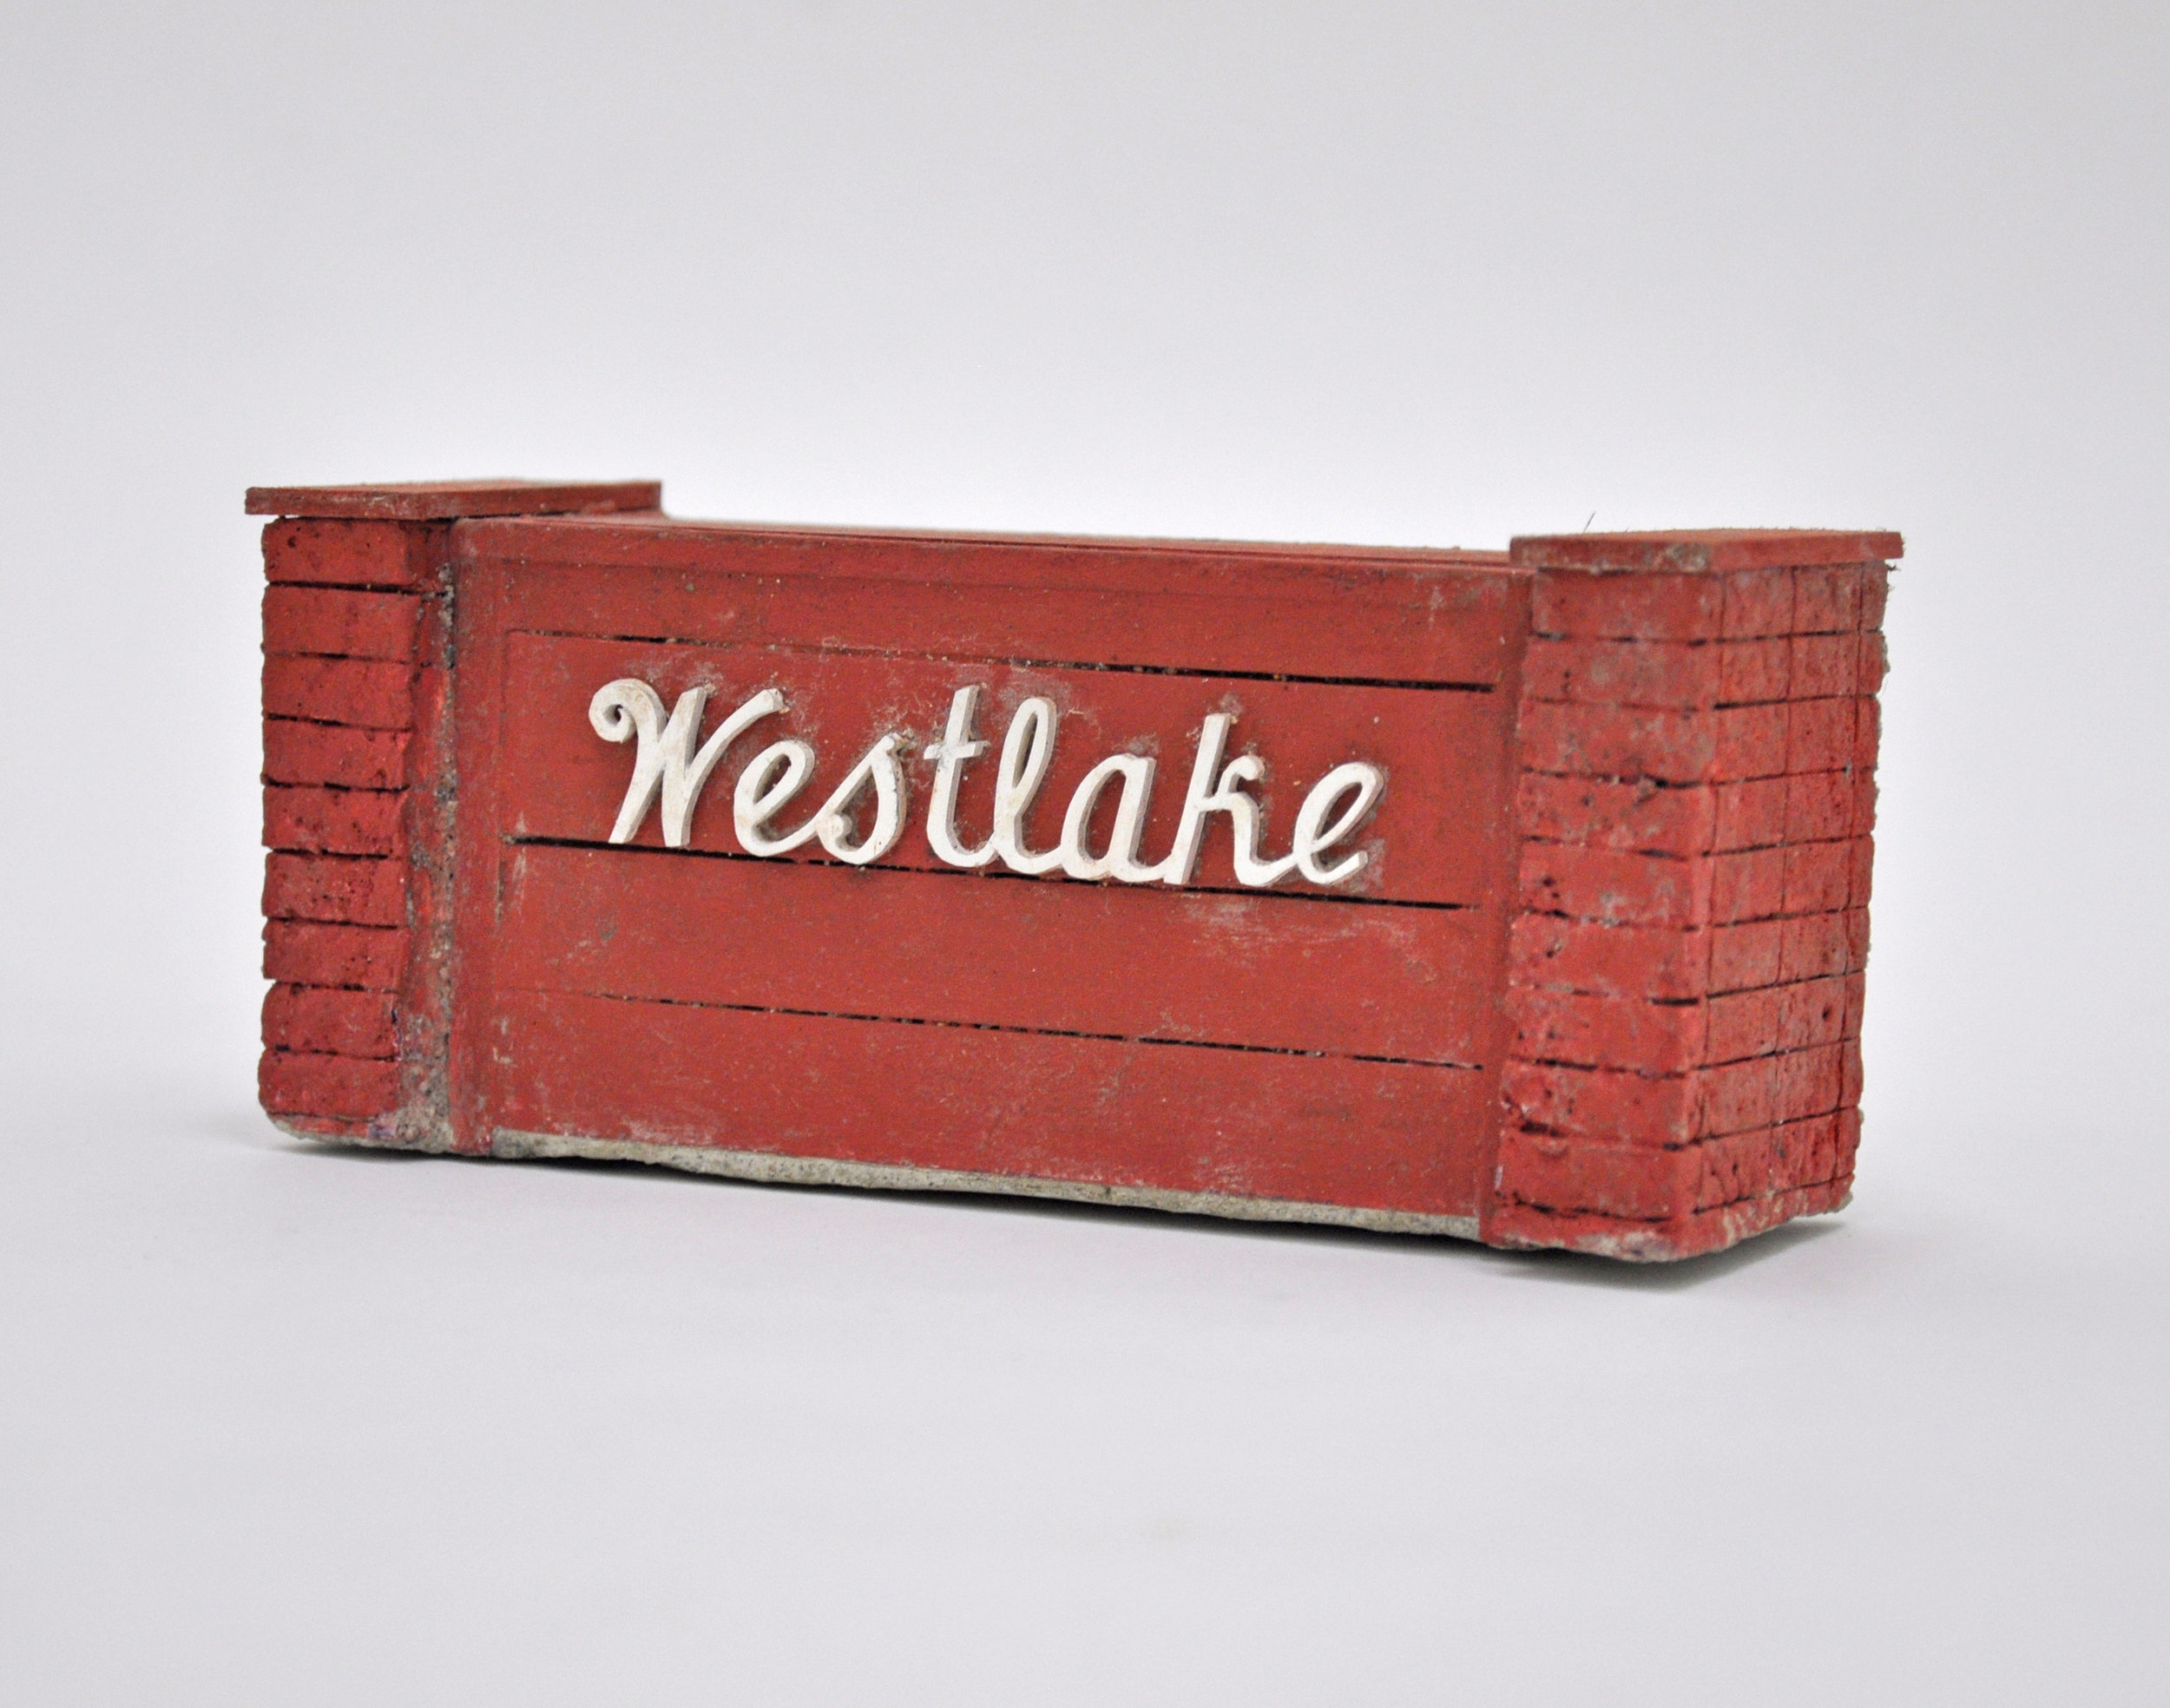 Malcolm Kenter, Westlake, 2019, Latex and Enamel on Wood, Foam, 6 x 2 x 3in